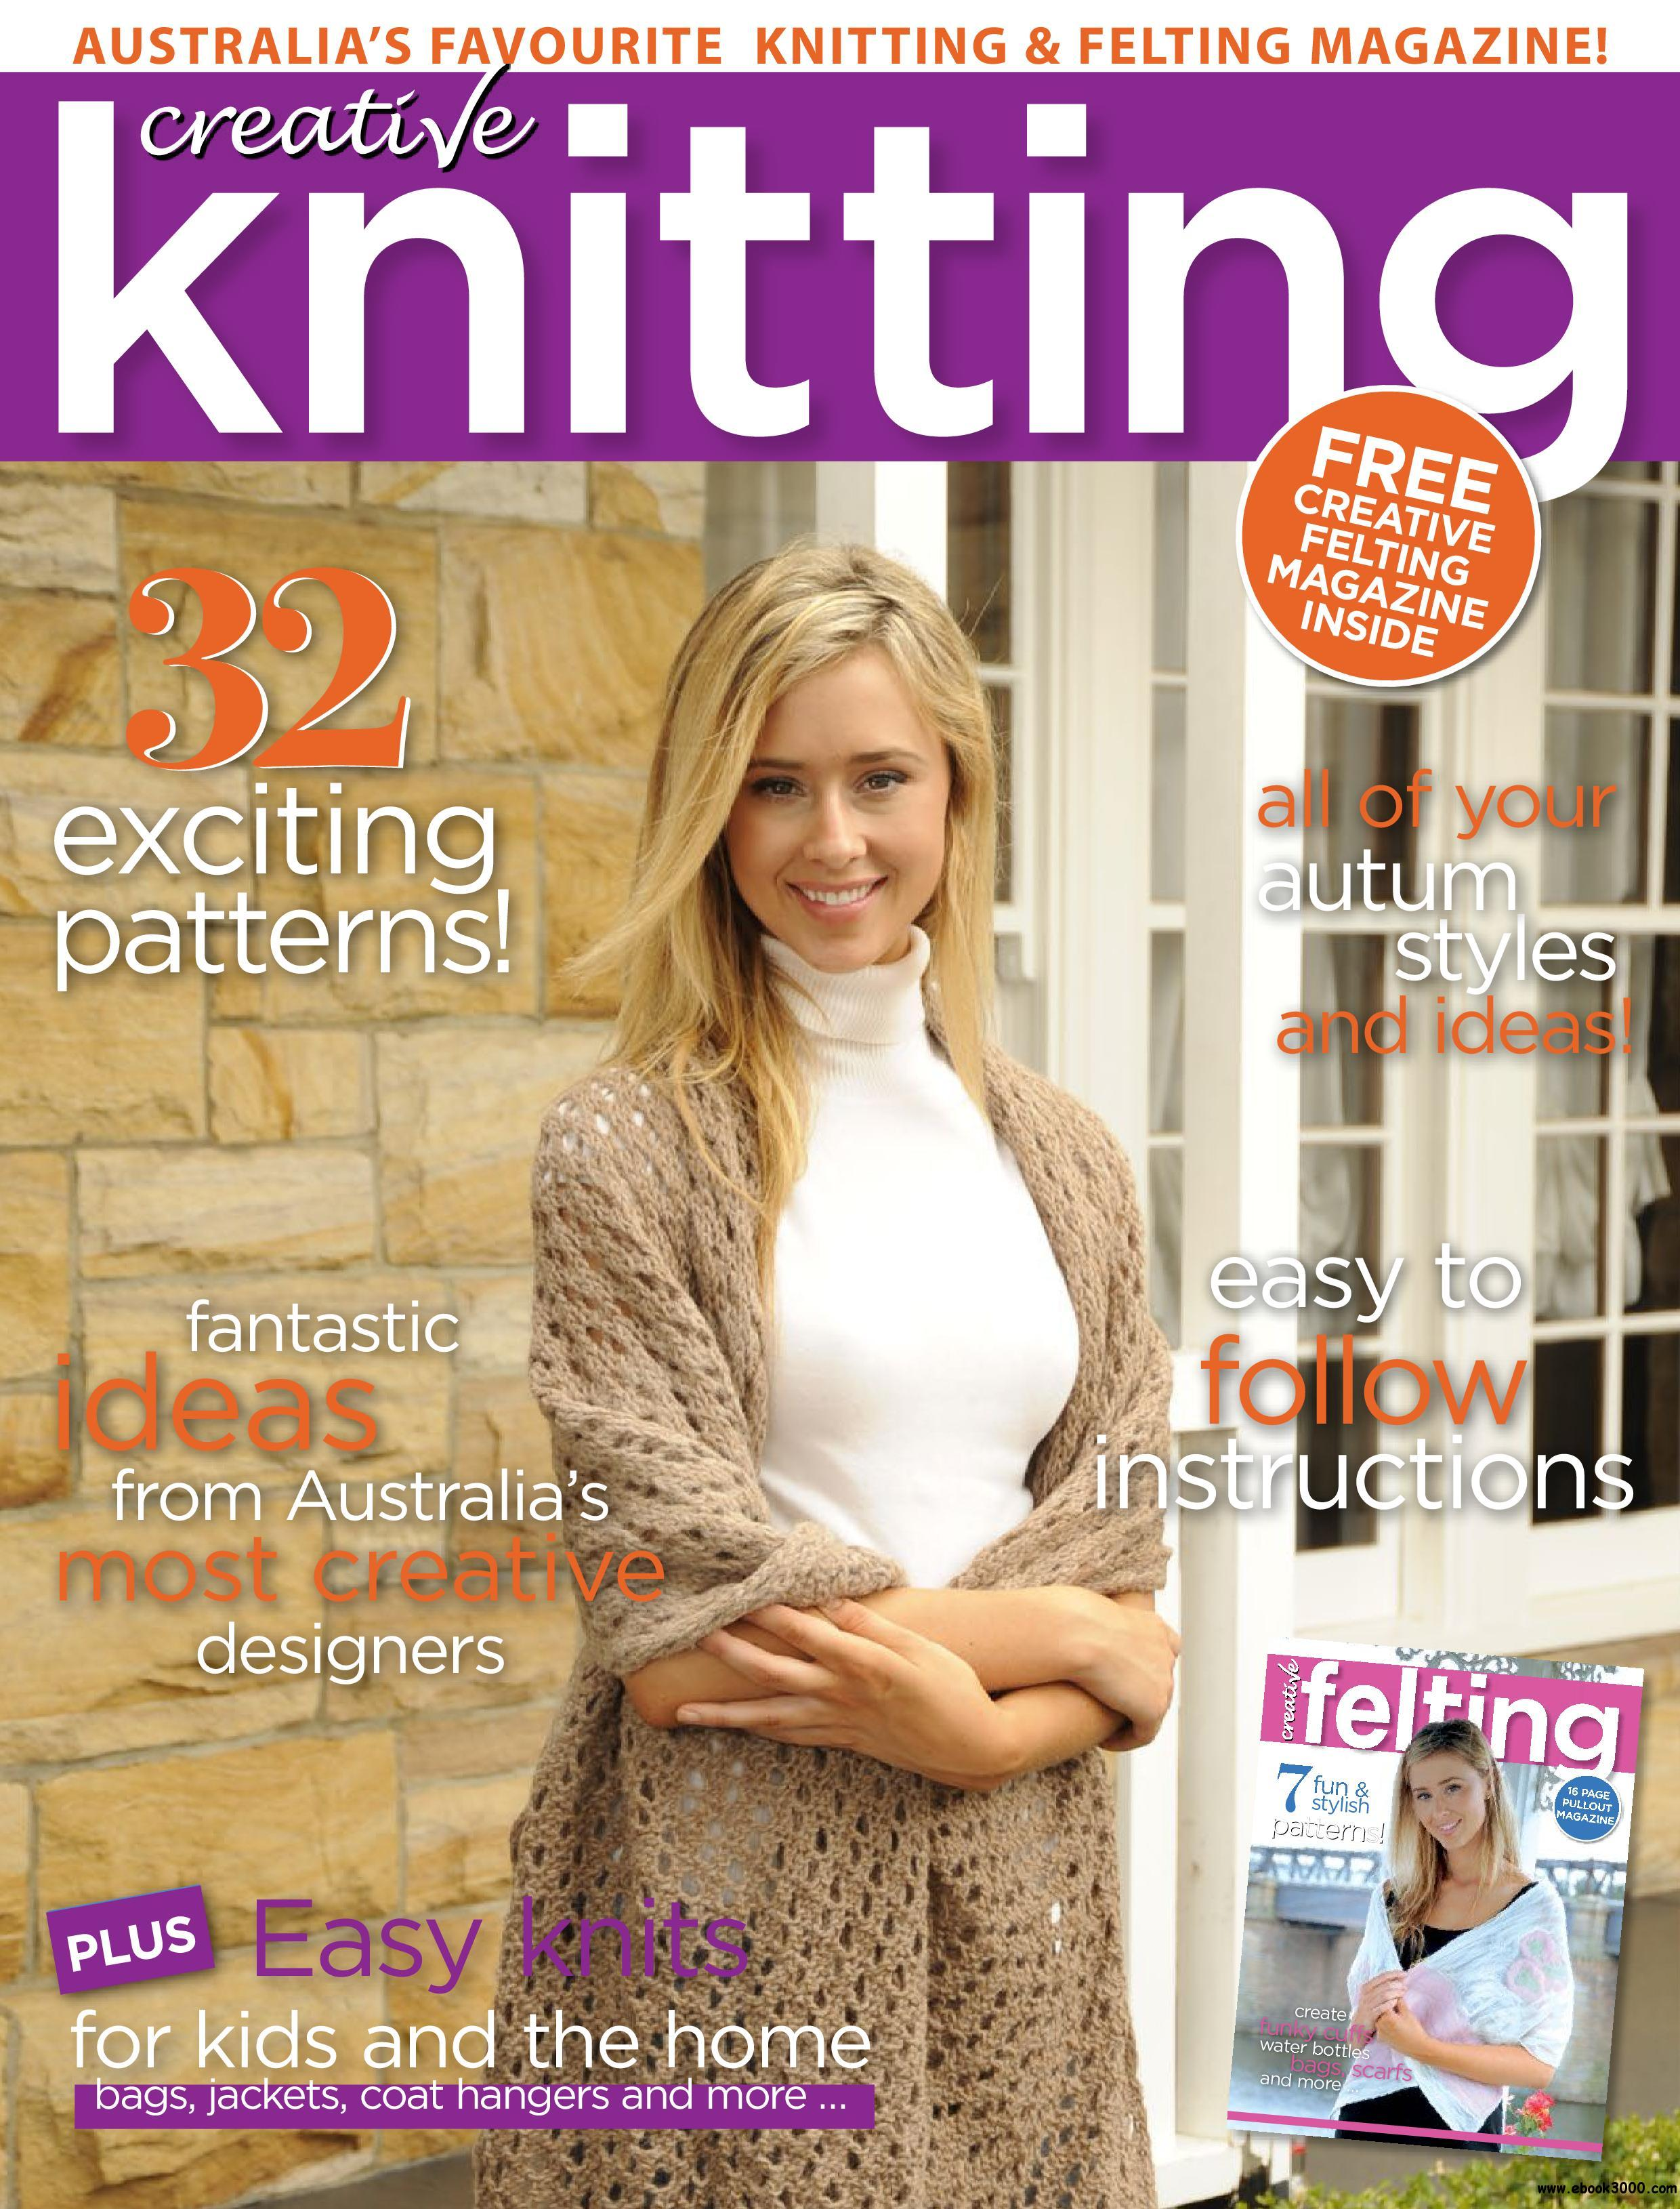 Australias creative knitting february 2018 free ebooks download english 84 pages true pdf 445 mb fandeluxe Image collections